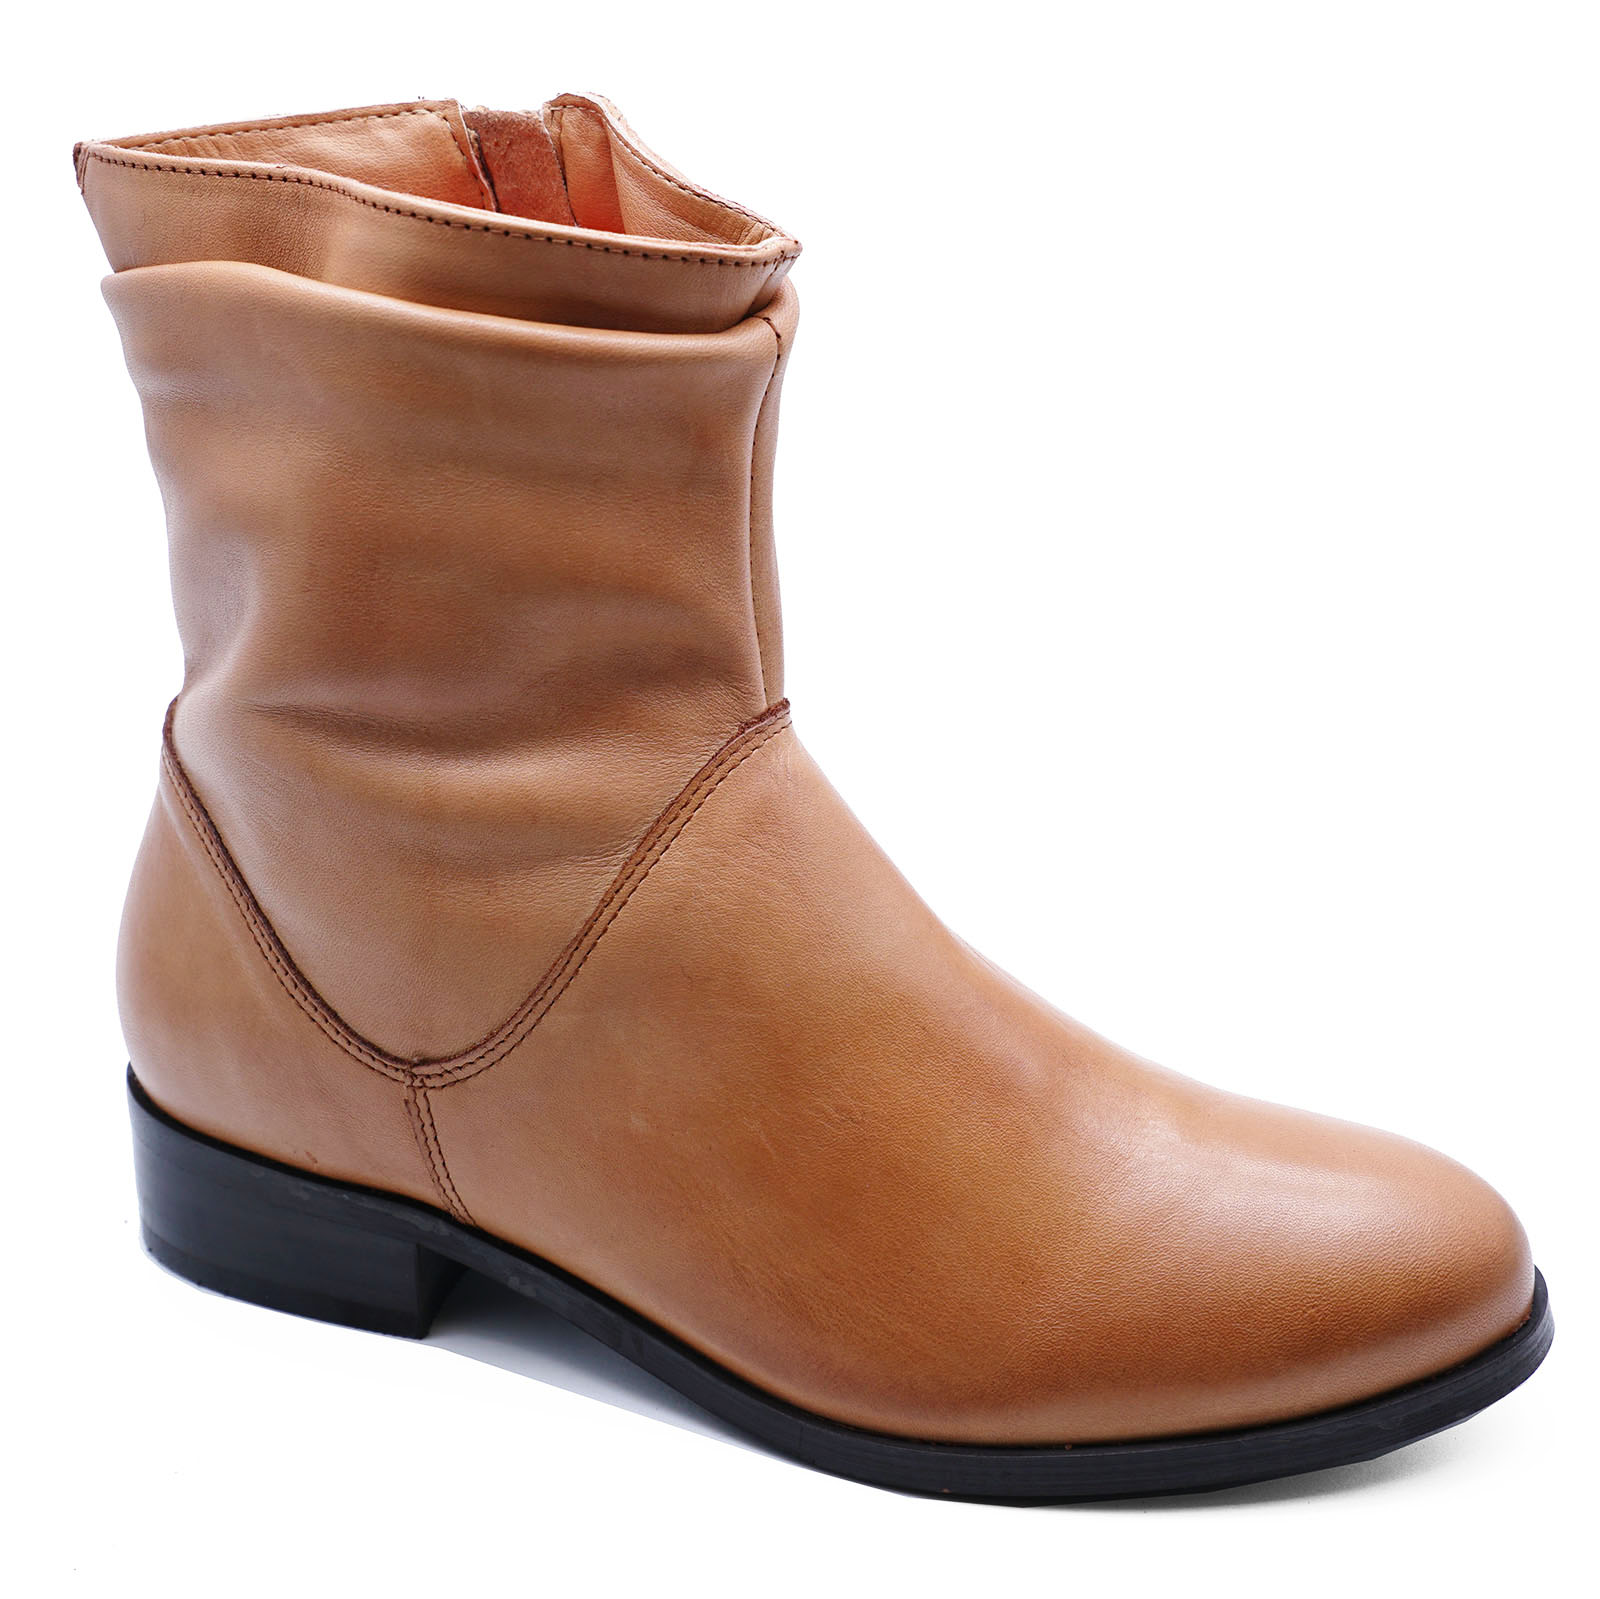 LADIES-FLAT-GENUINE-LEATHER-TAN-ZIP-UP-ANKLE-CALF-BOOTS-COMFY-SHOES-SIZES-2-9 thumbnail 37